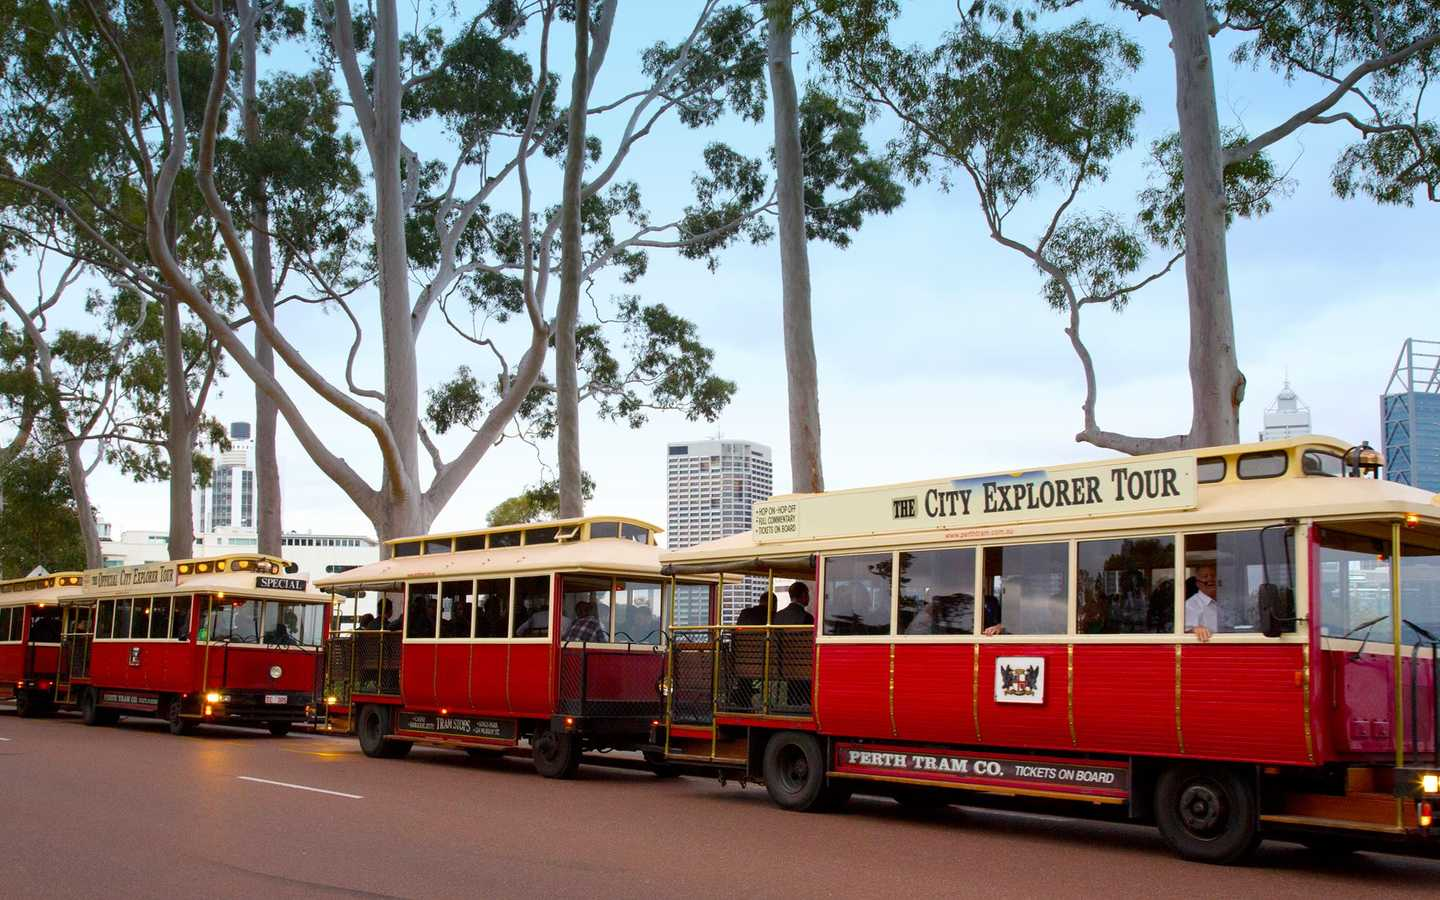 Perth Trams